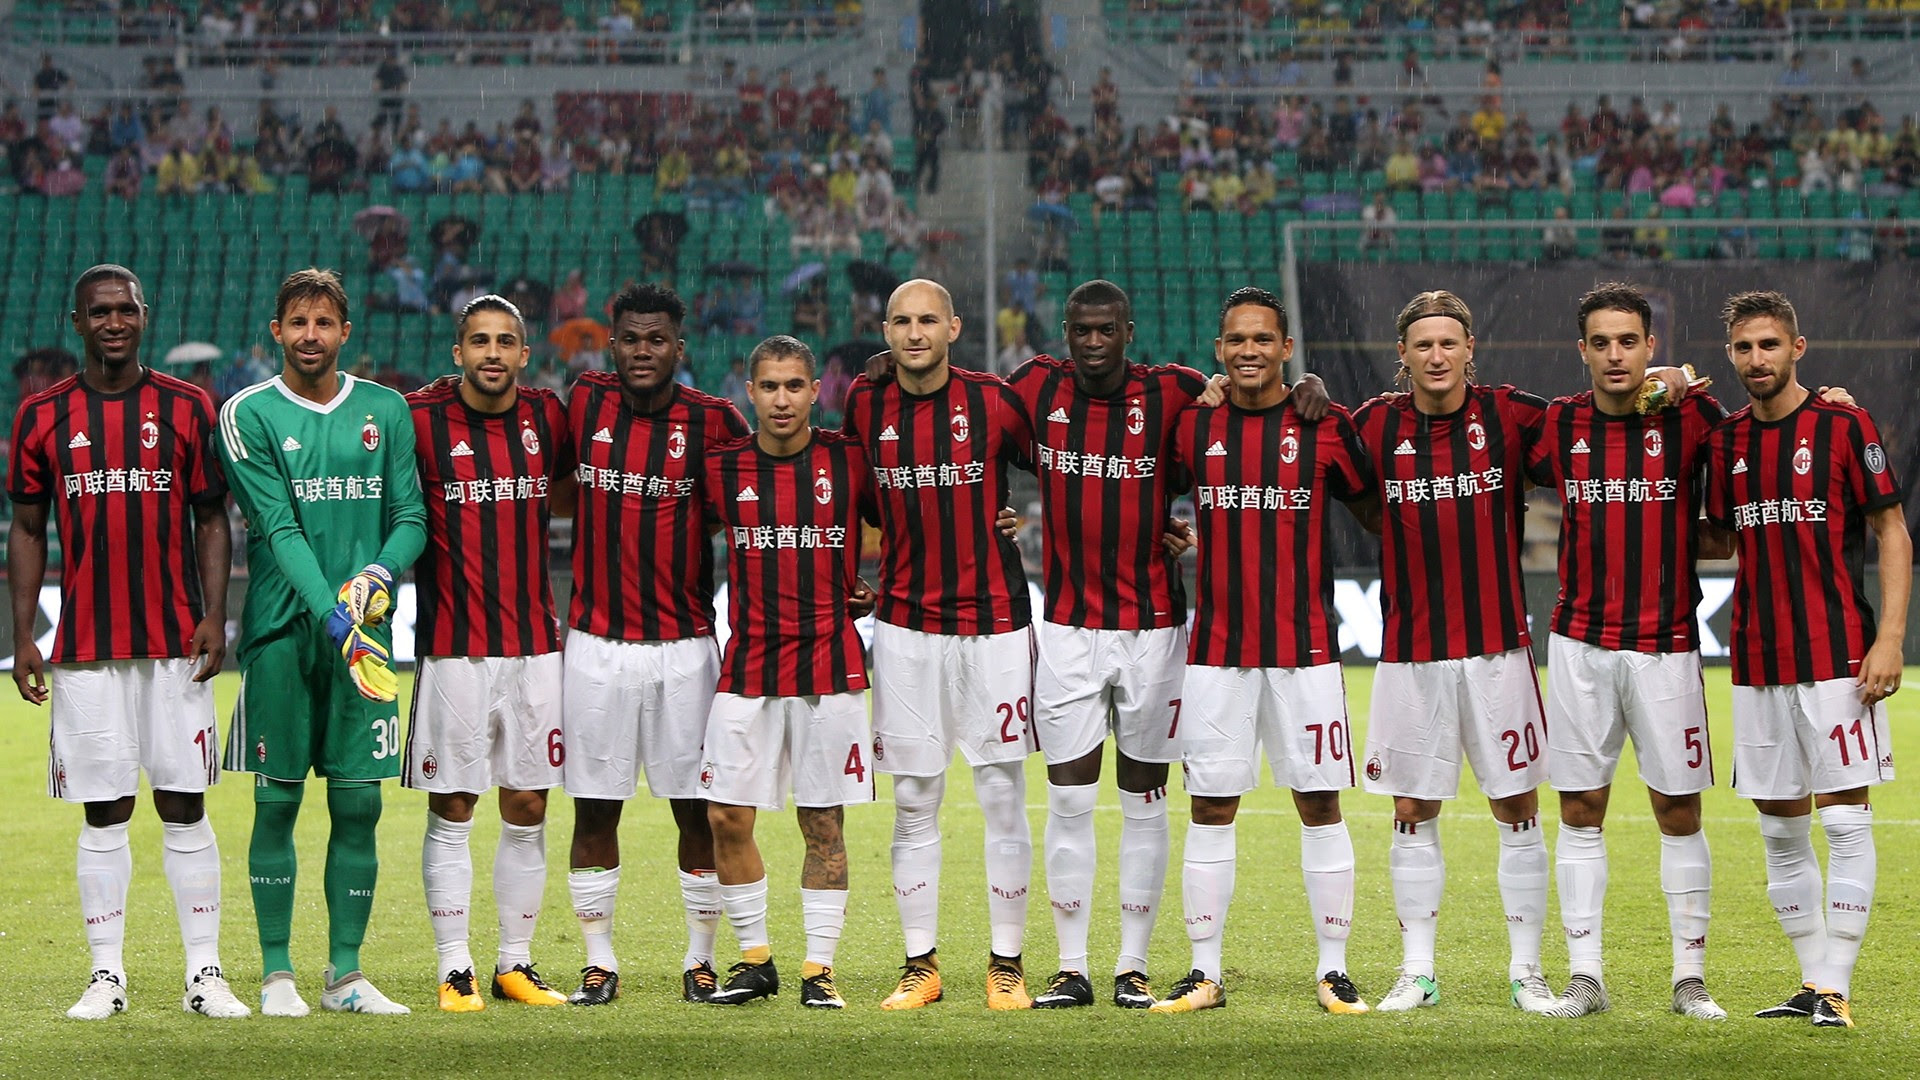 Ac Milan Wallpapers 2018 Squad 70 Background Pictures